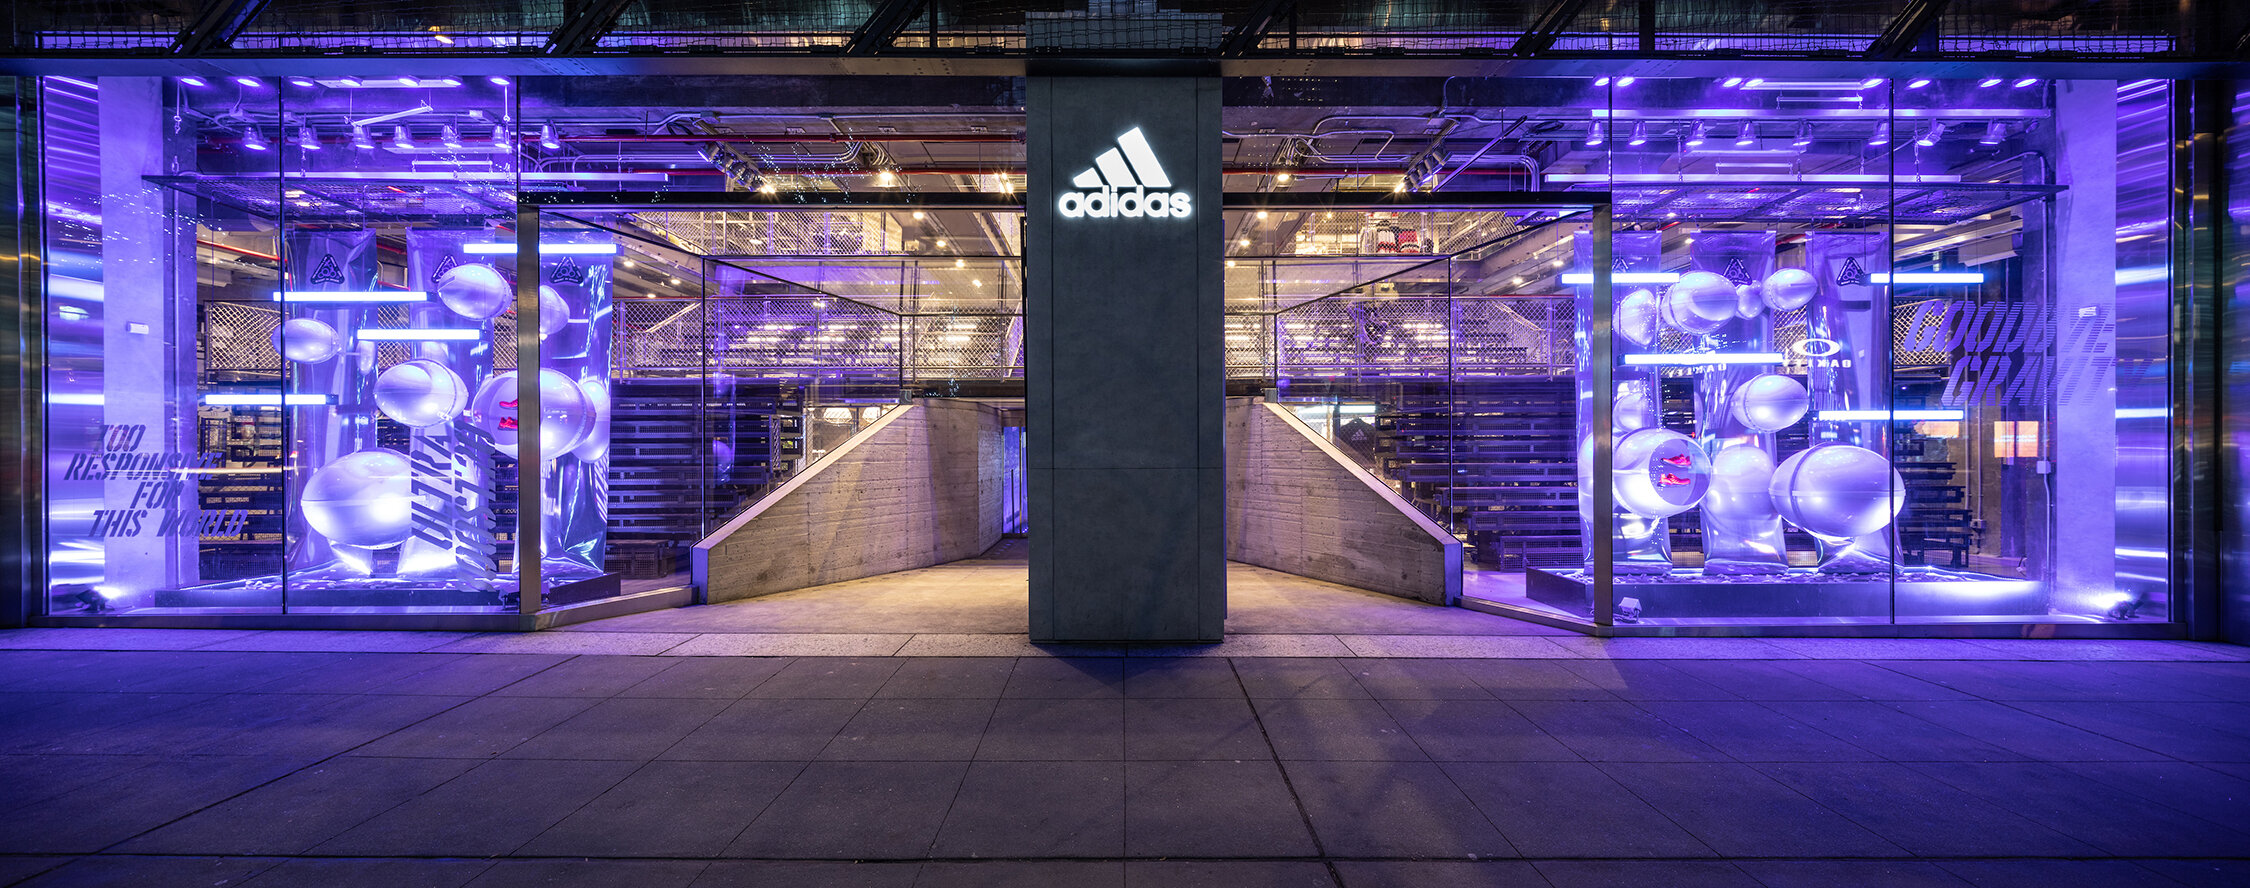 Ultraboost 20 at Adidas 5th Ave